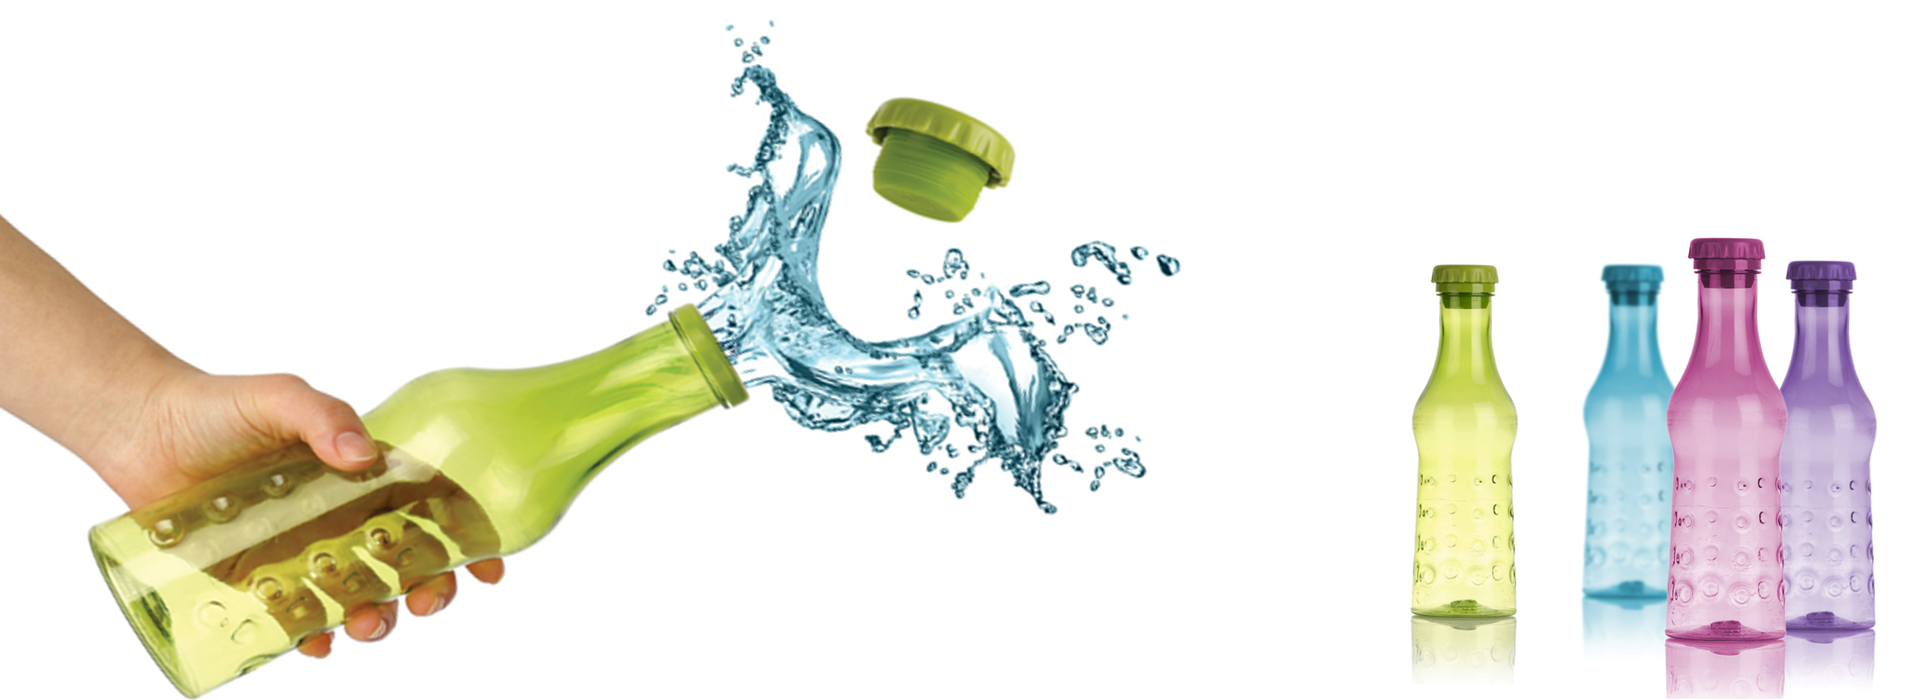 green-water-bottle-with-splash2